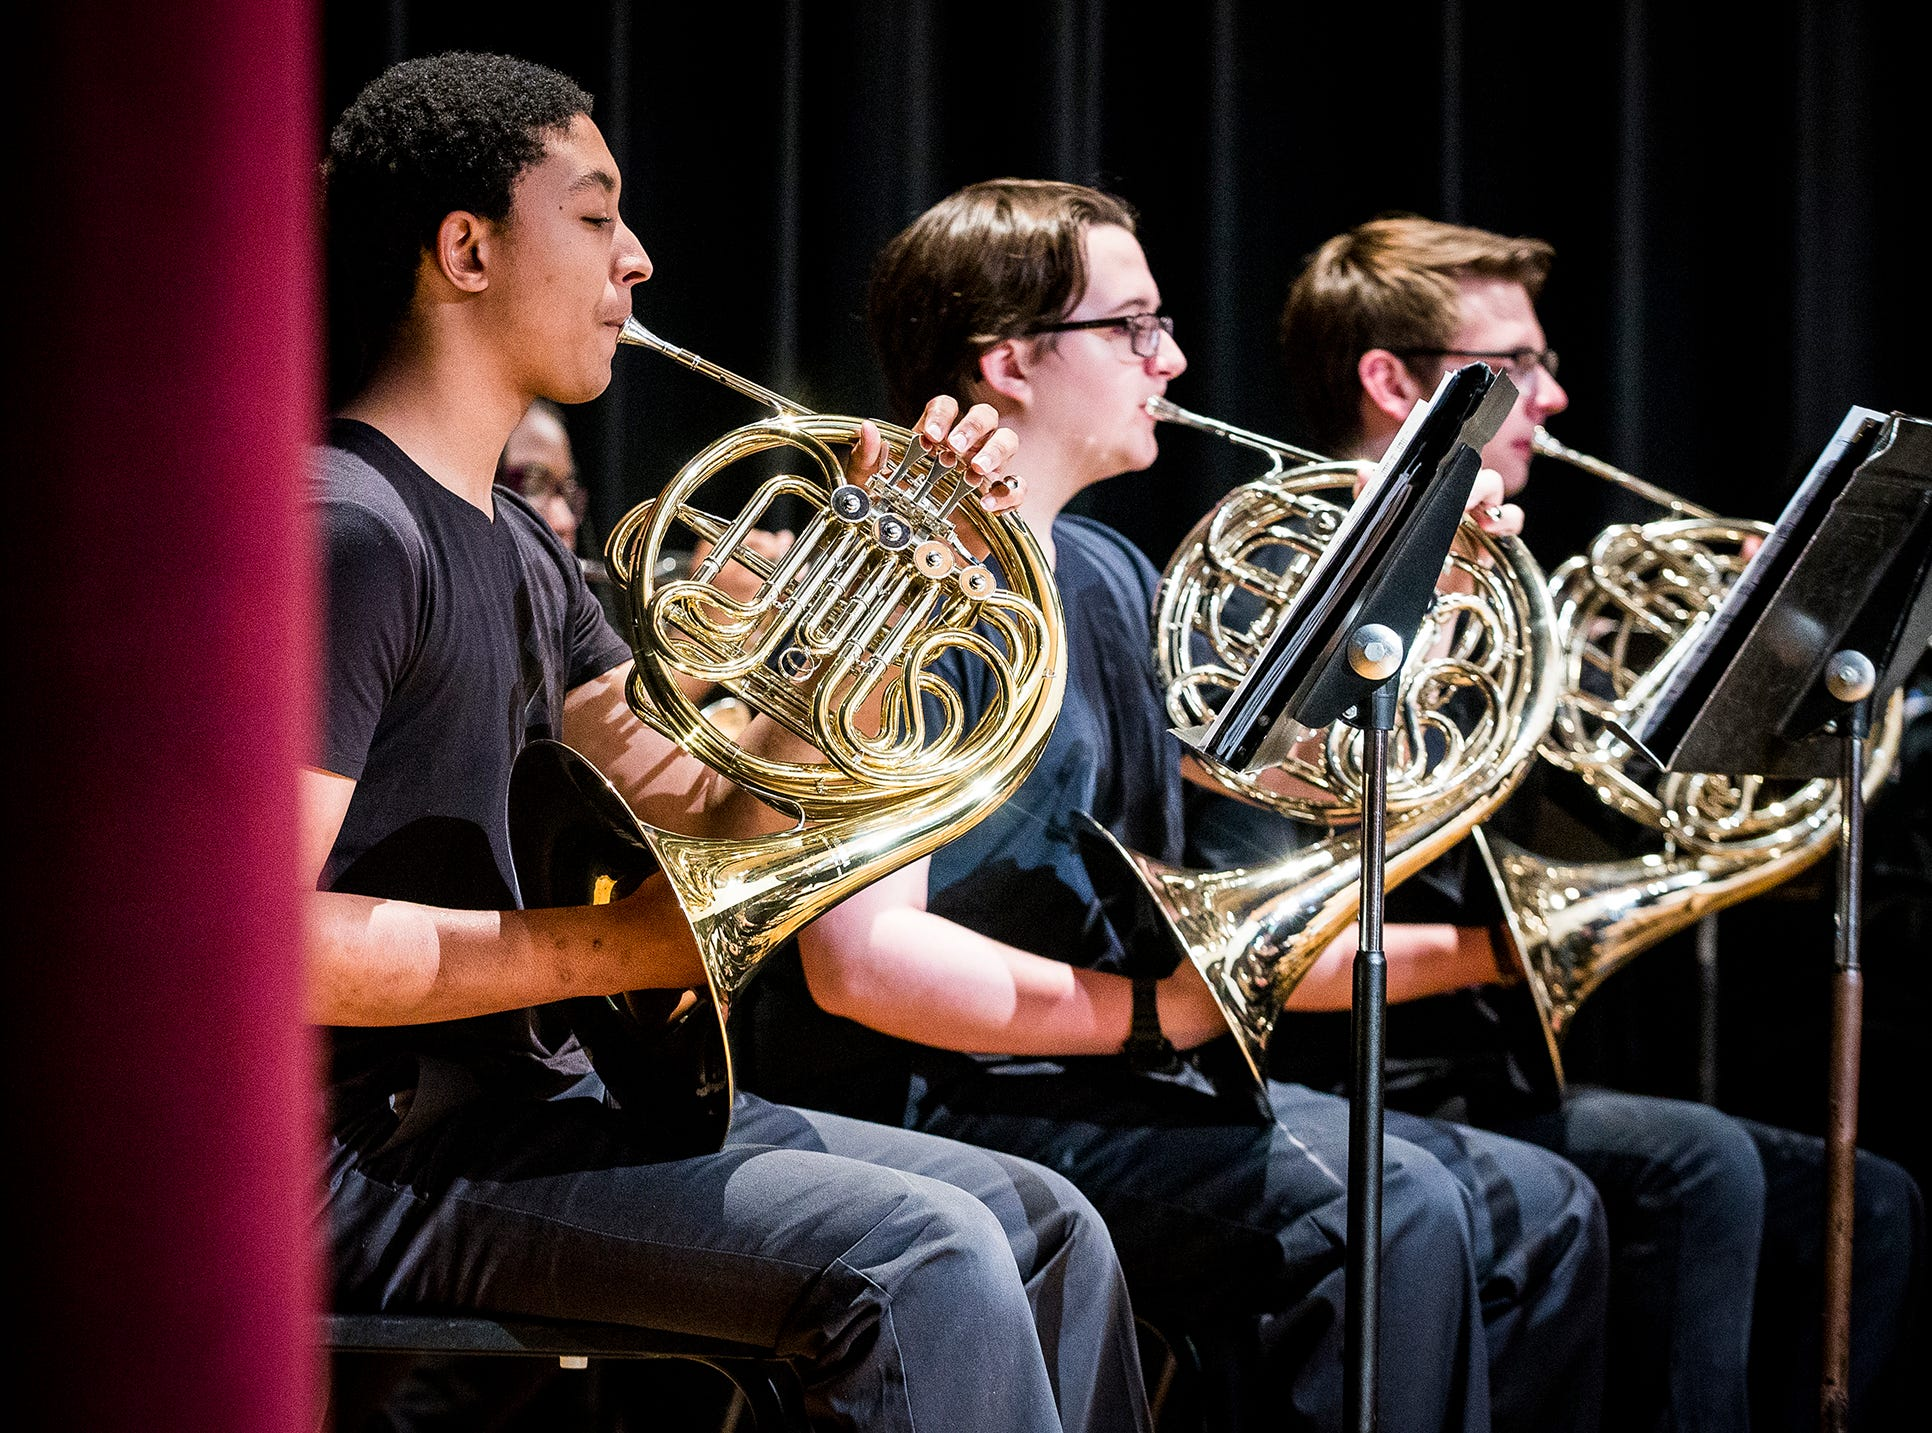 The Muncie Central Band performs during the 2019 MCS Adult Education Program graduation ceremony at Central Thursday night.